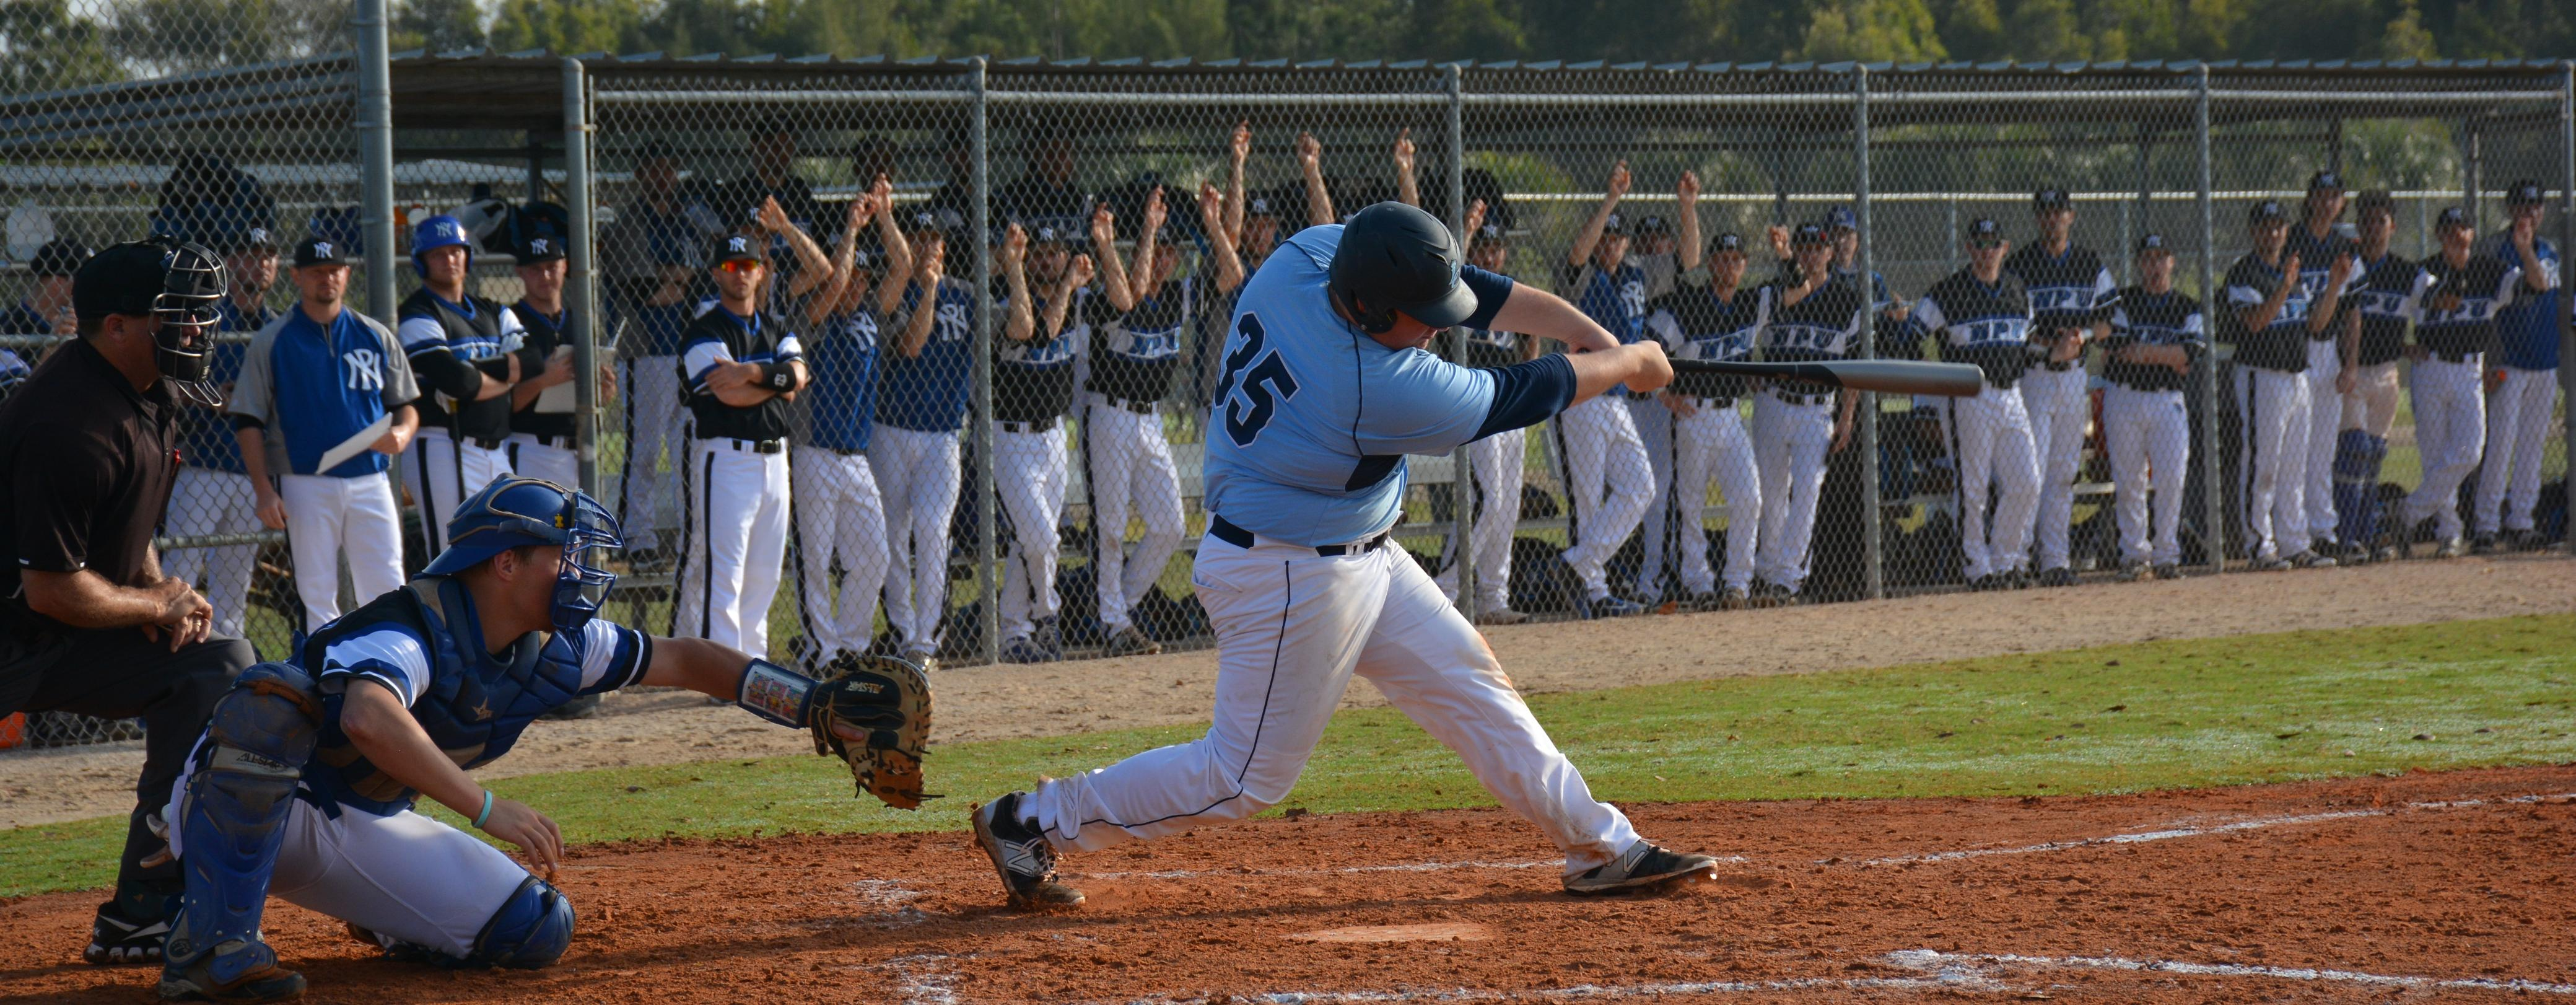 Old Westbury Powers Past Baseball in Florida Debut